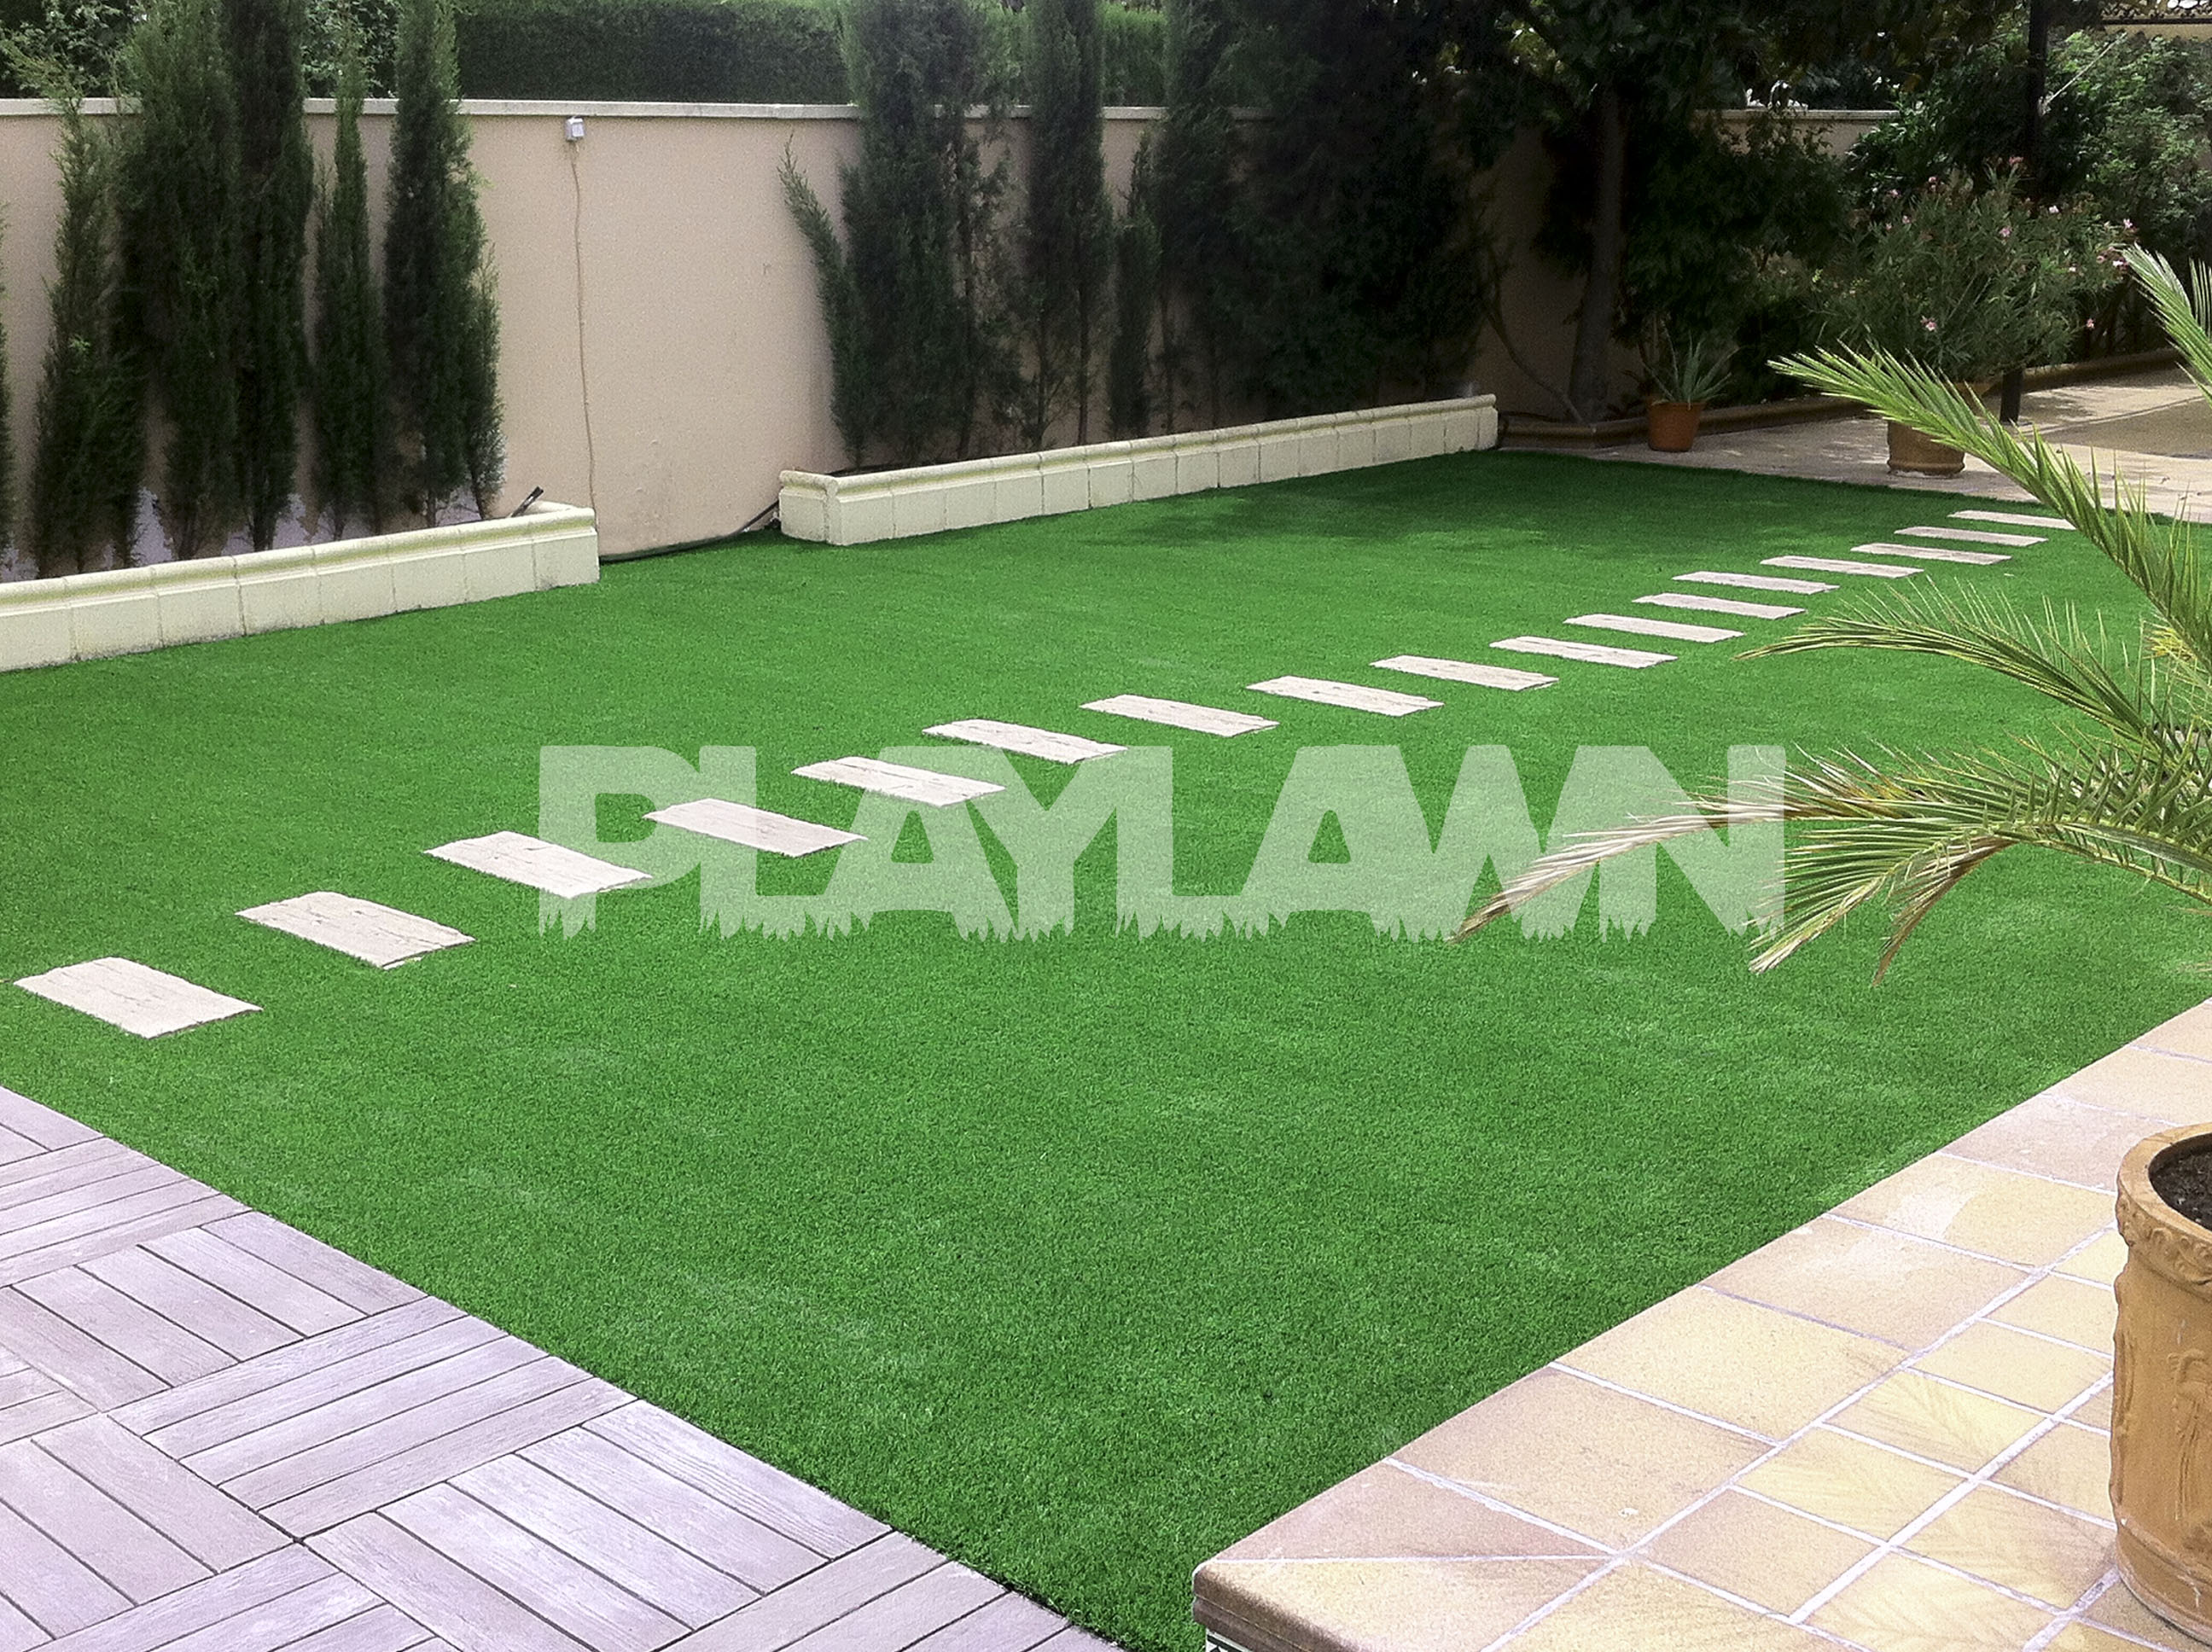 C sped artificial m laga jard n playlawn playlawn - Cesped artificial malaga ...